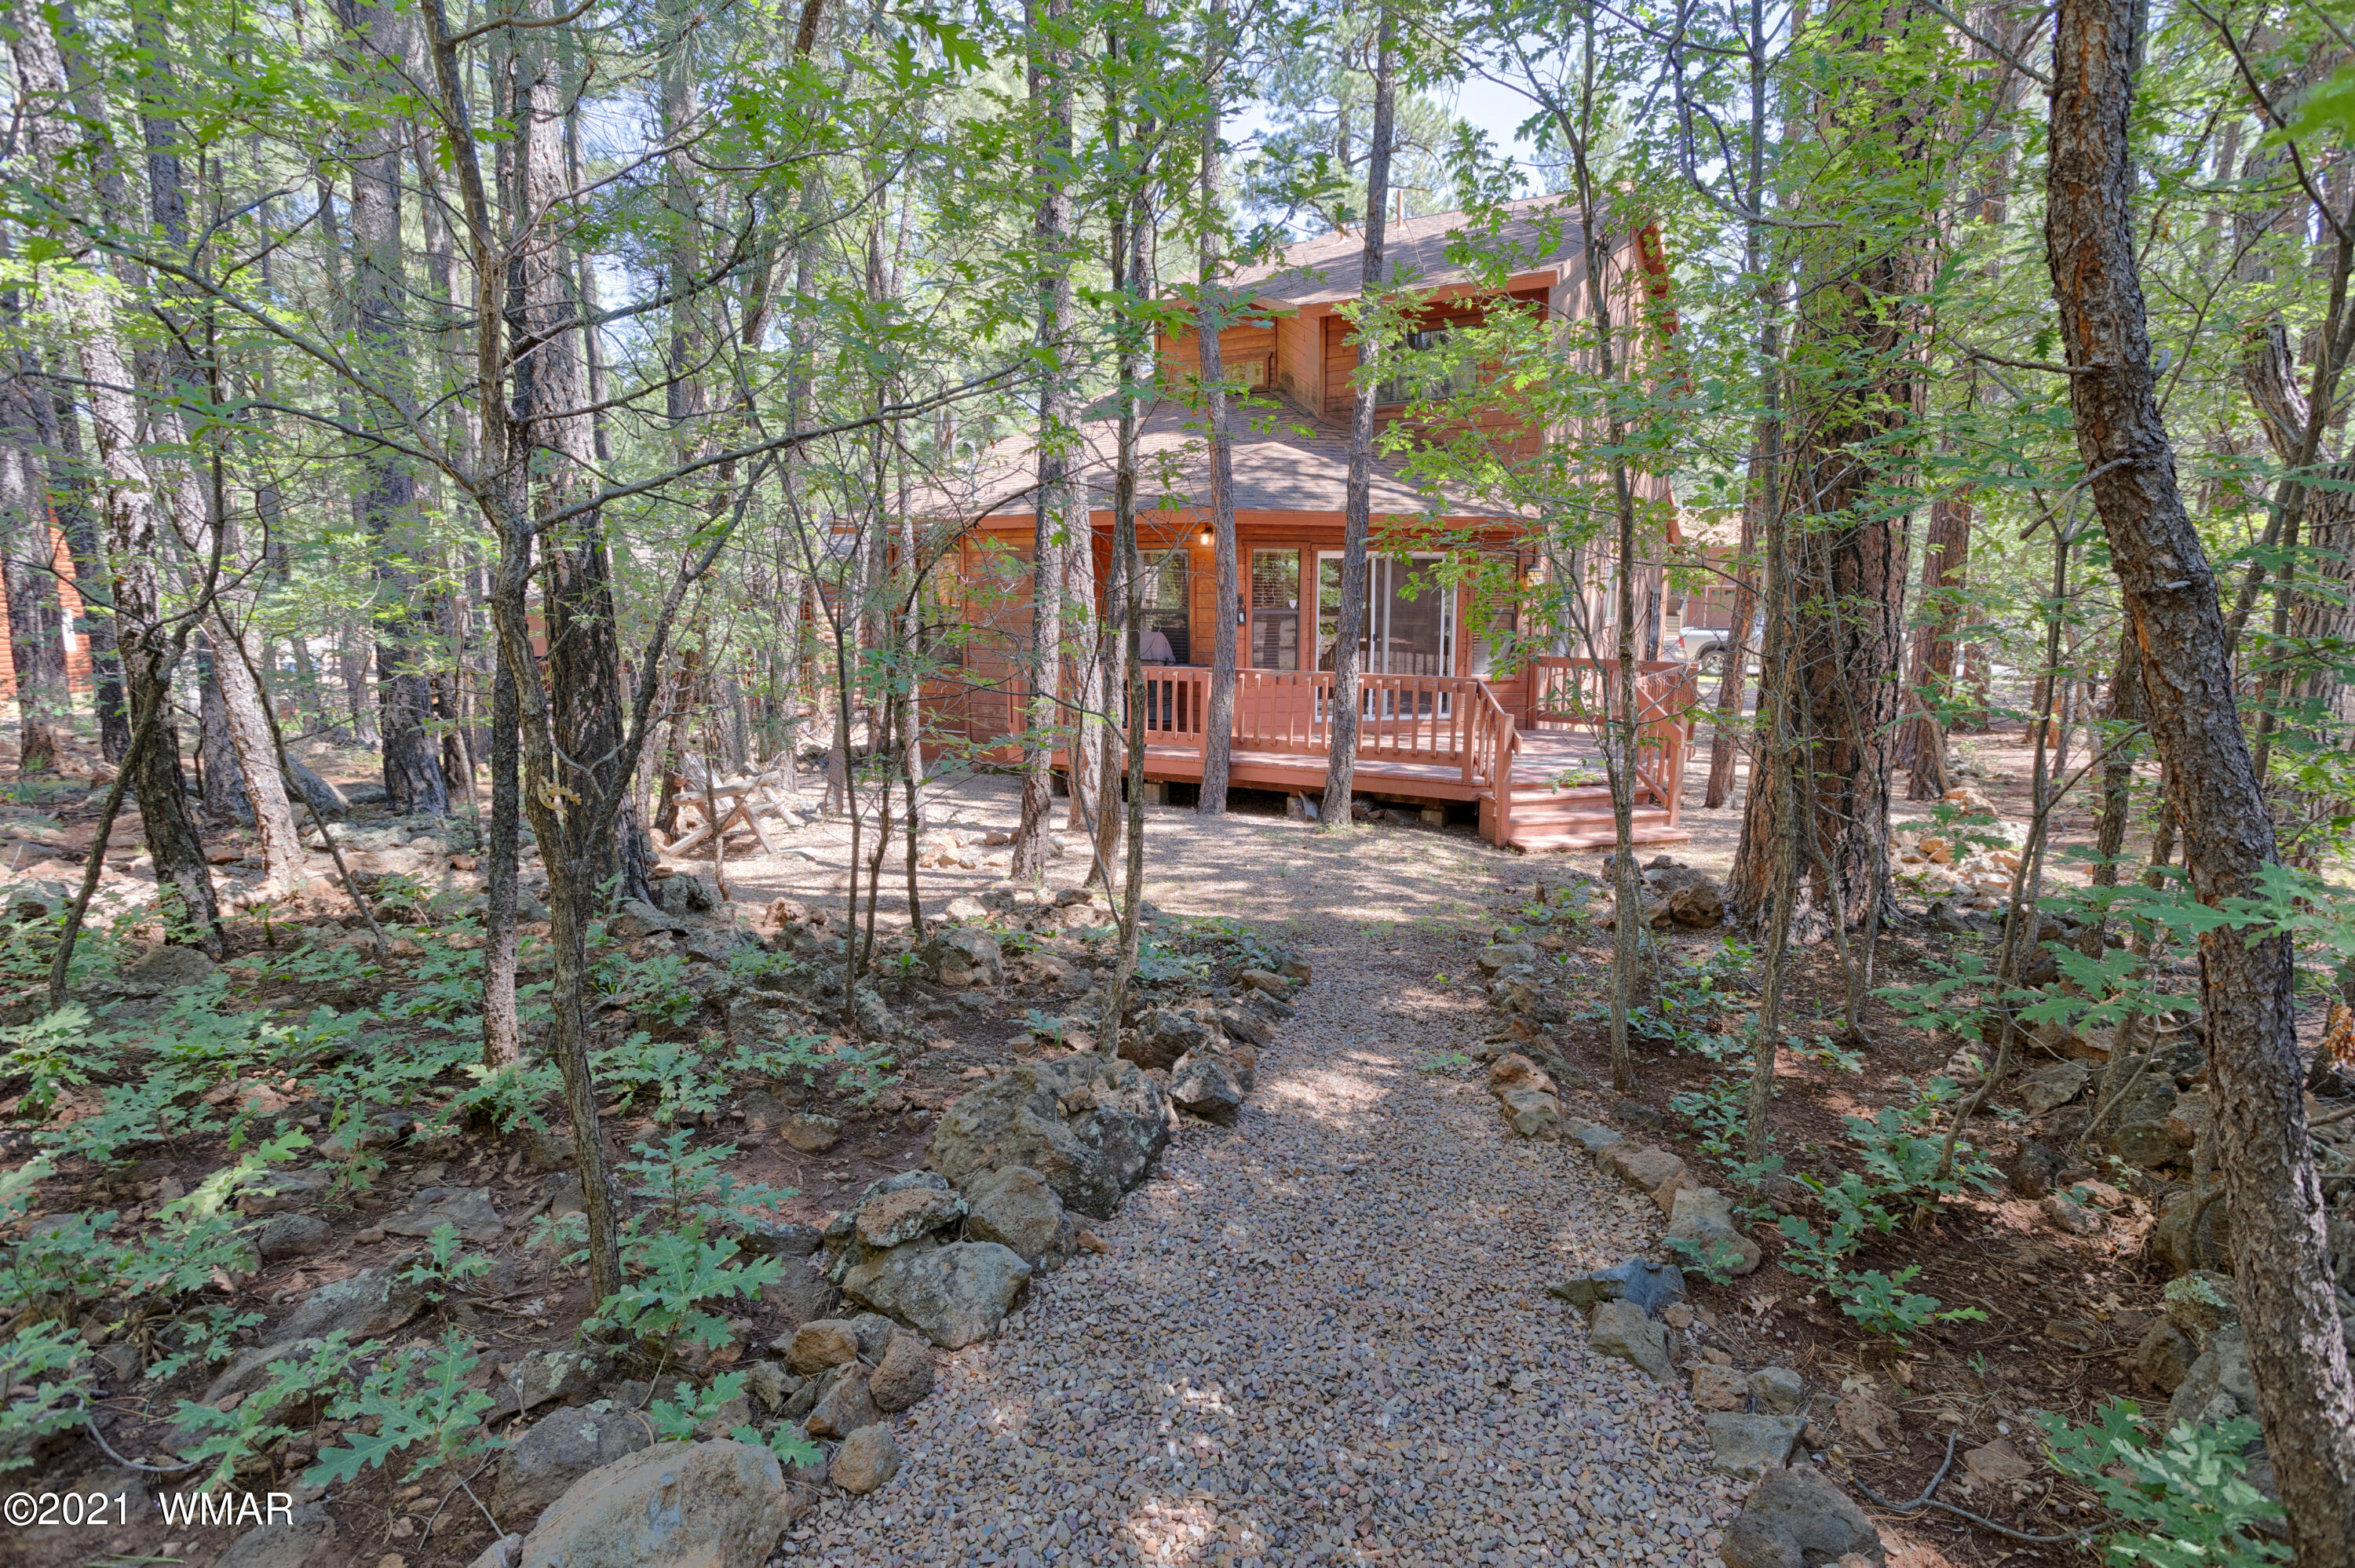 Here it is, a mountain cabin in the trees with loads of space for family to enjoy the cool mountain lifestyle.  3 BR, 2.5 BA with a two-car garage has an open great room floor plan that leads to a deck that sits in a yard of tall Pines and Oaks.  Plus home is located in the Pinetop Lakes Recreation Community which includes:  family events, a club house, pool, jacuzzi, fitness center, tennis and pickleball courts, children's play area. HOA is only $335/year.  There is natural gas available however house is all electric.